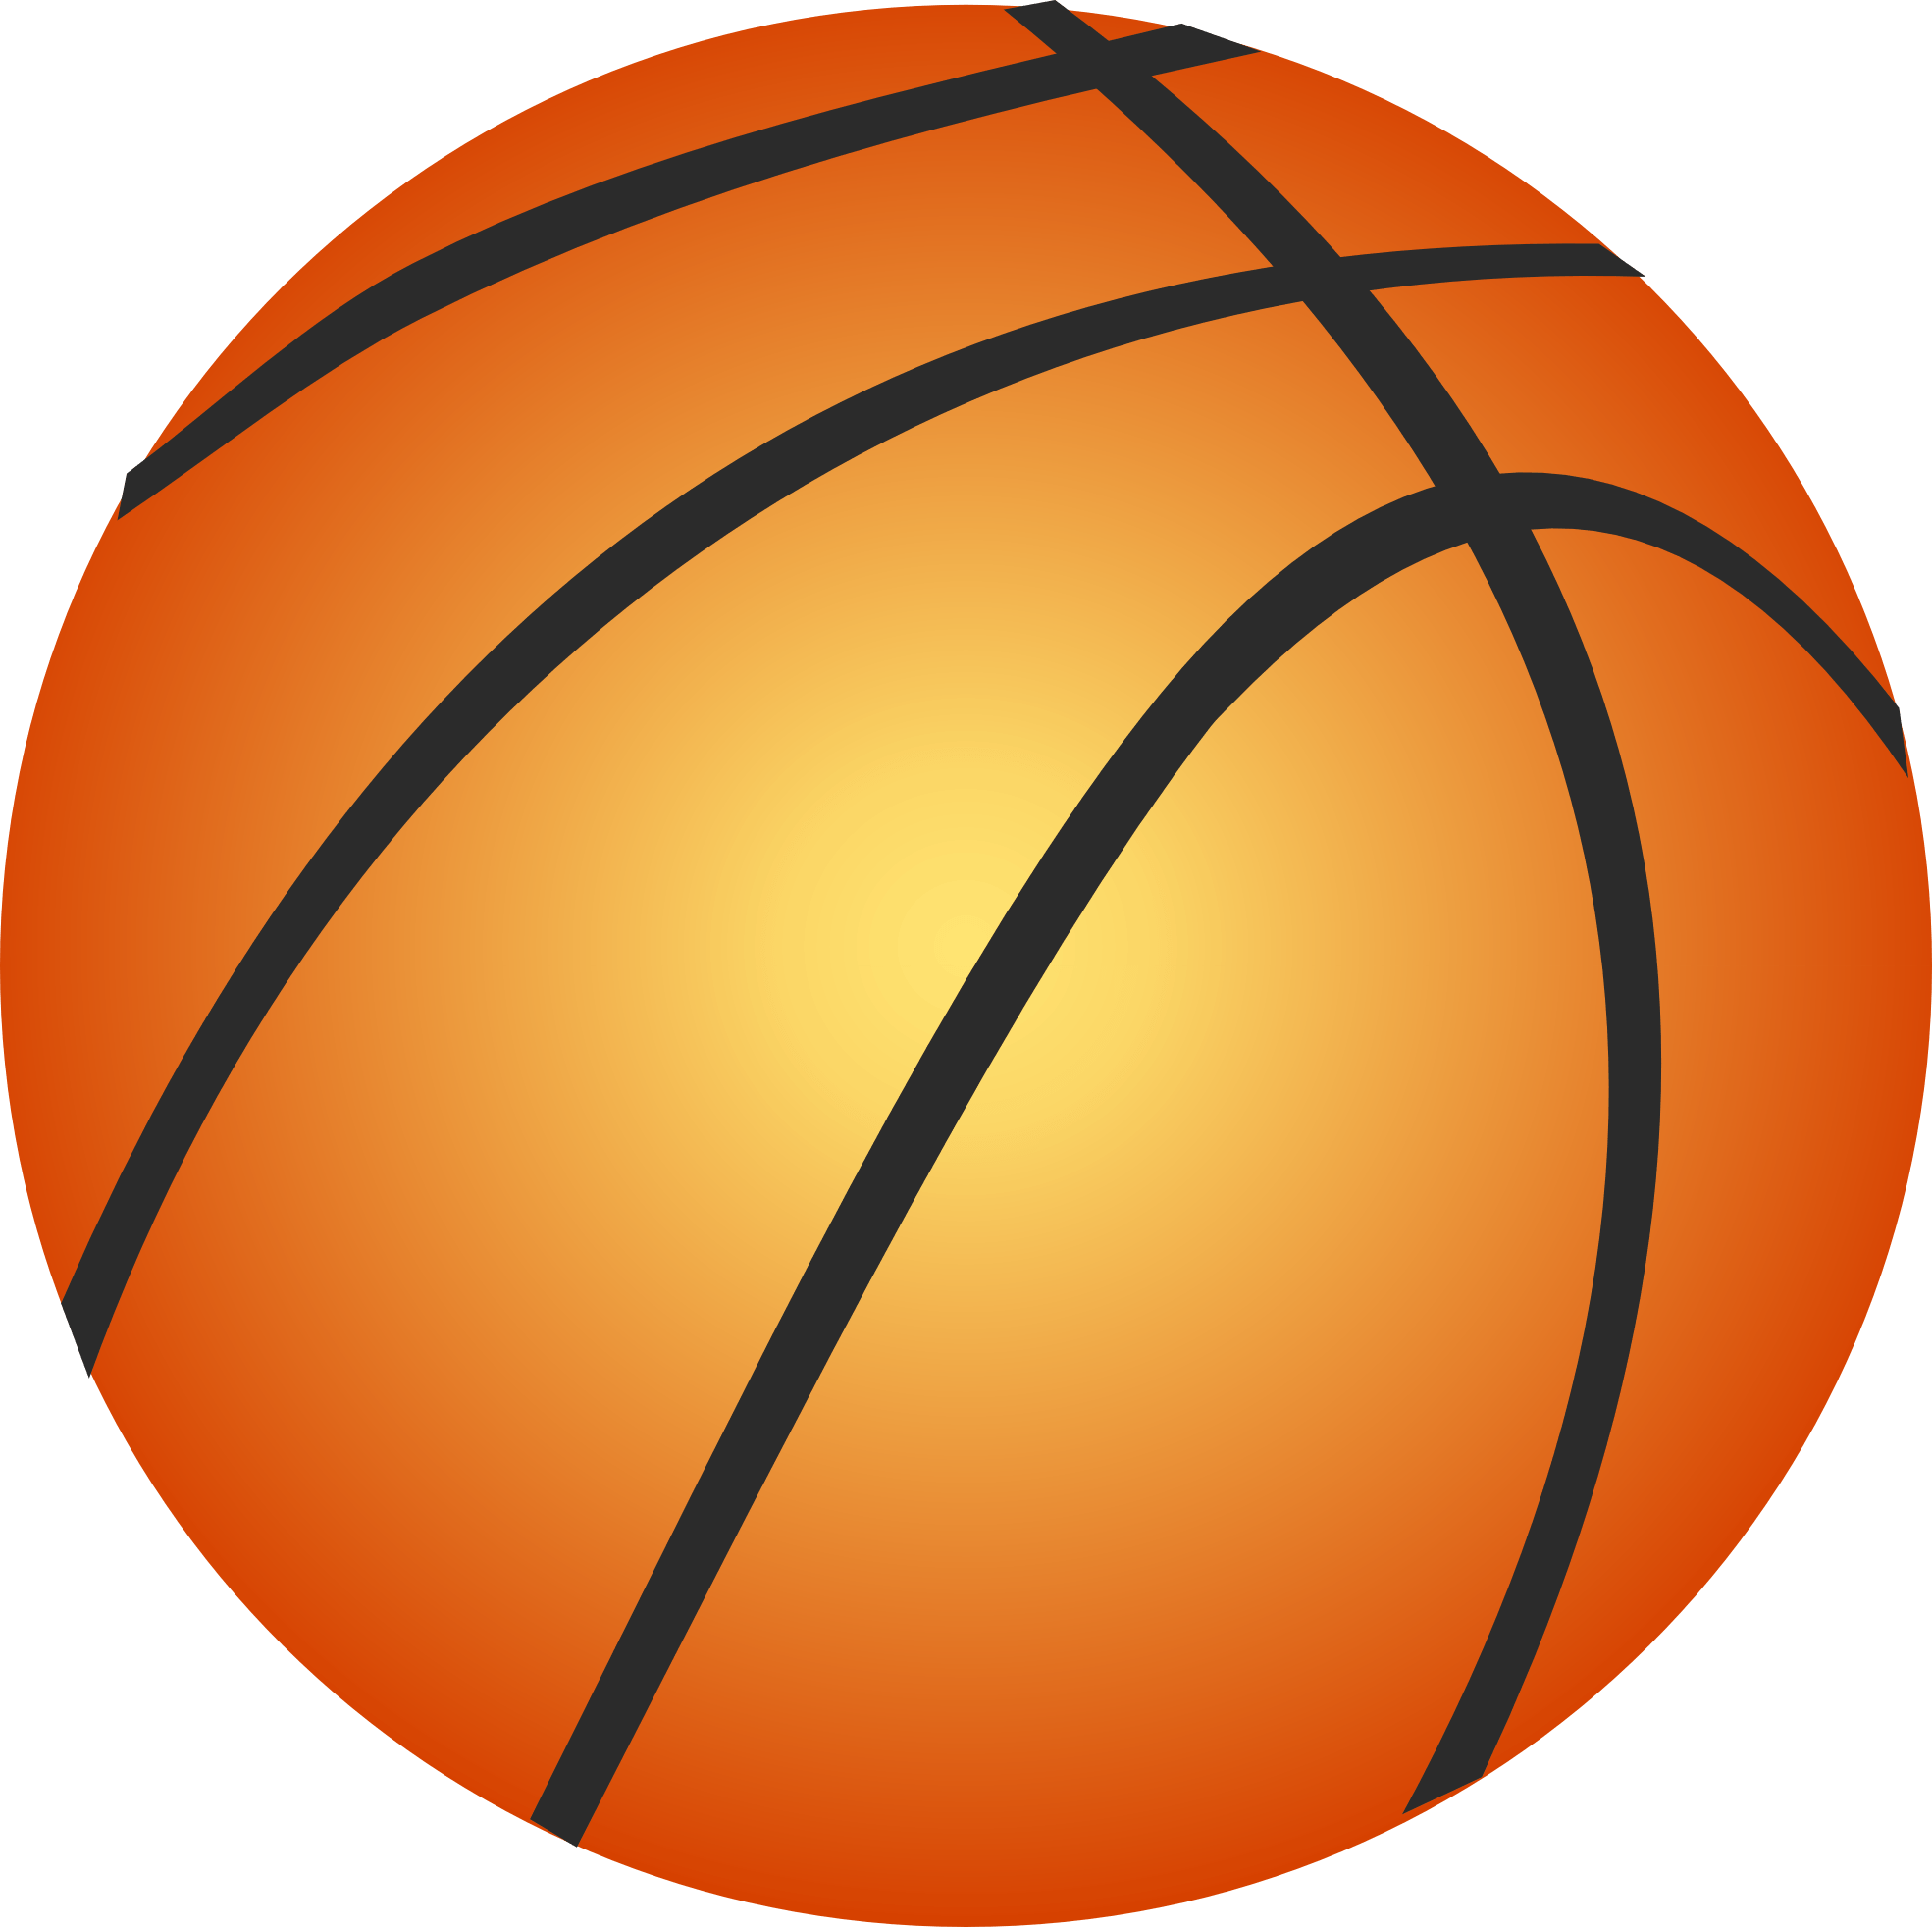 Father clipart basketball. Animated clip art library